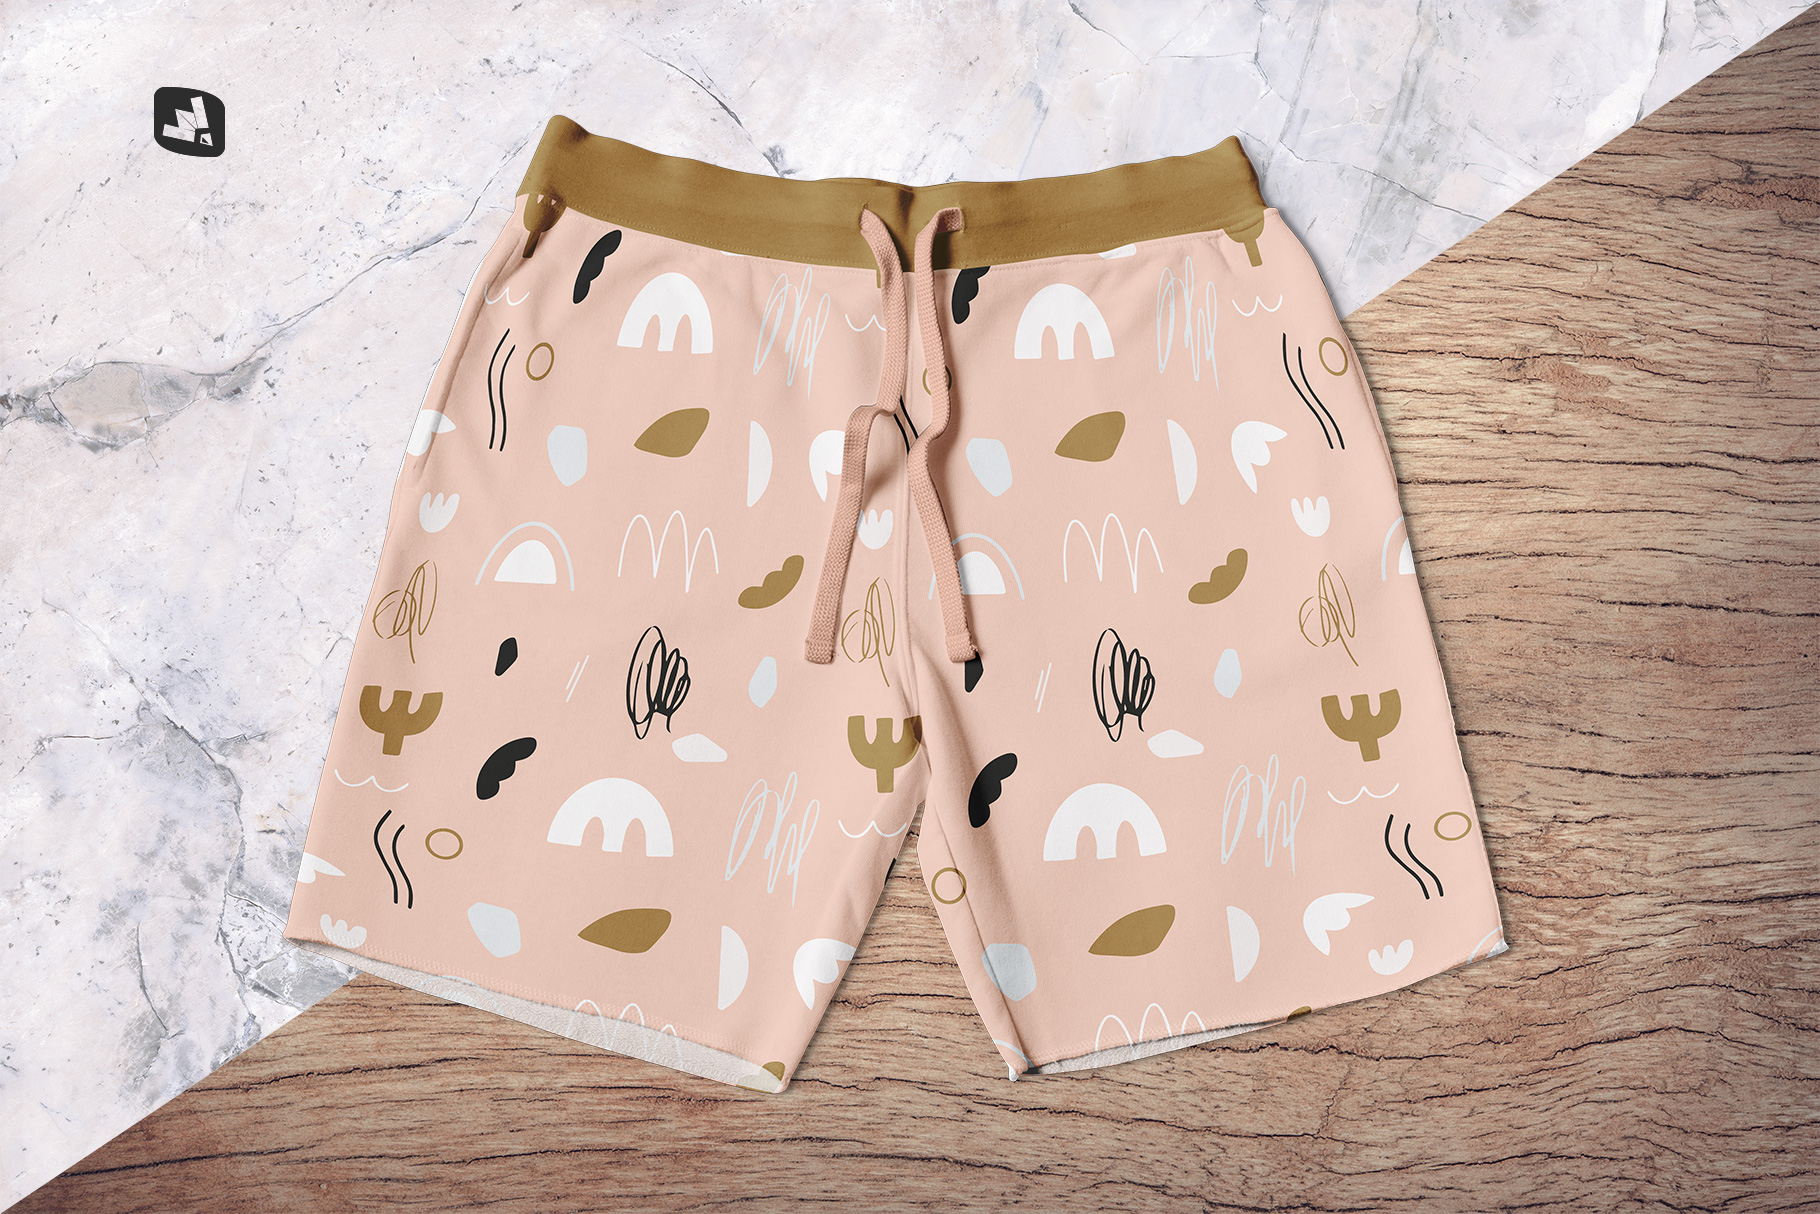 background options of the top view cotton shorts mockup